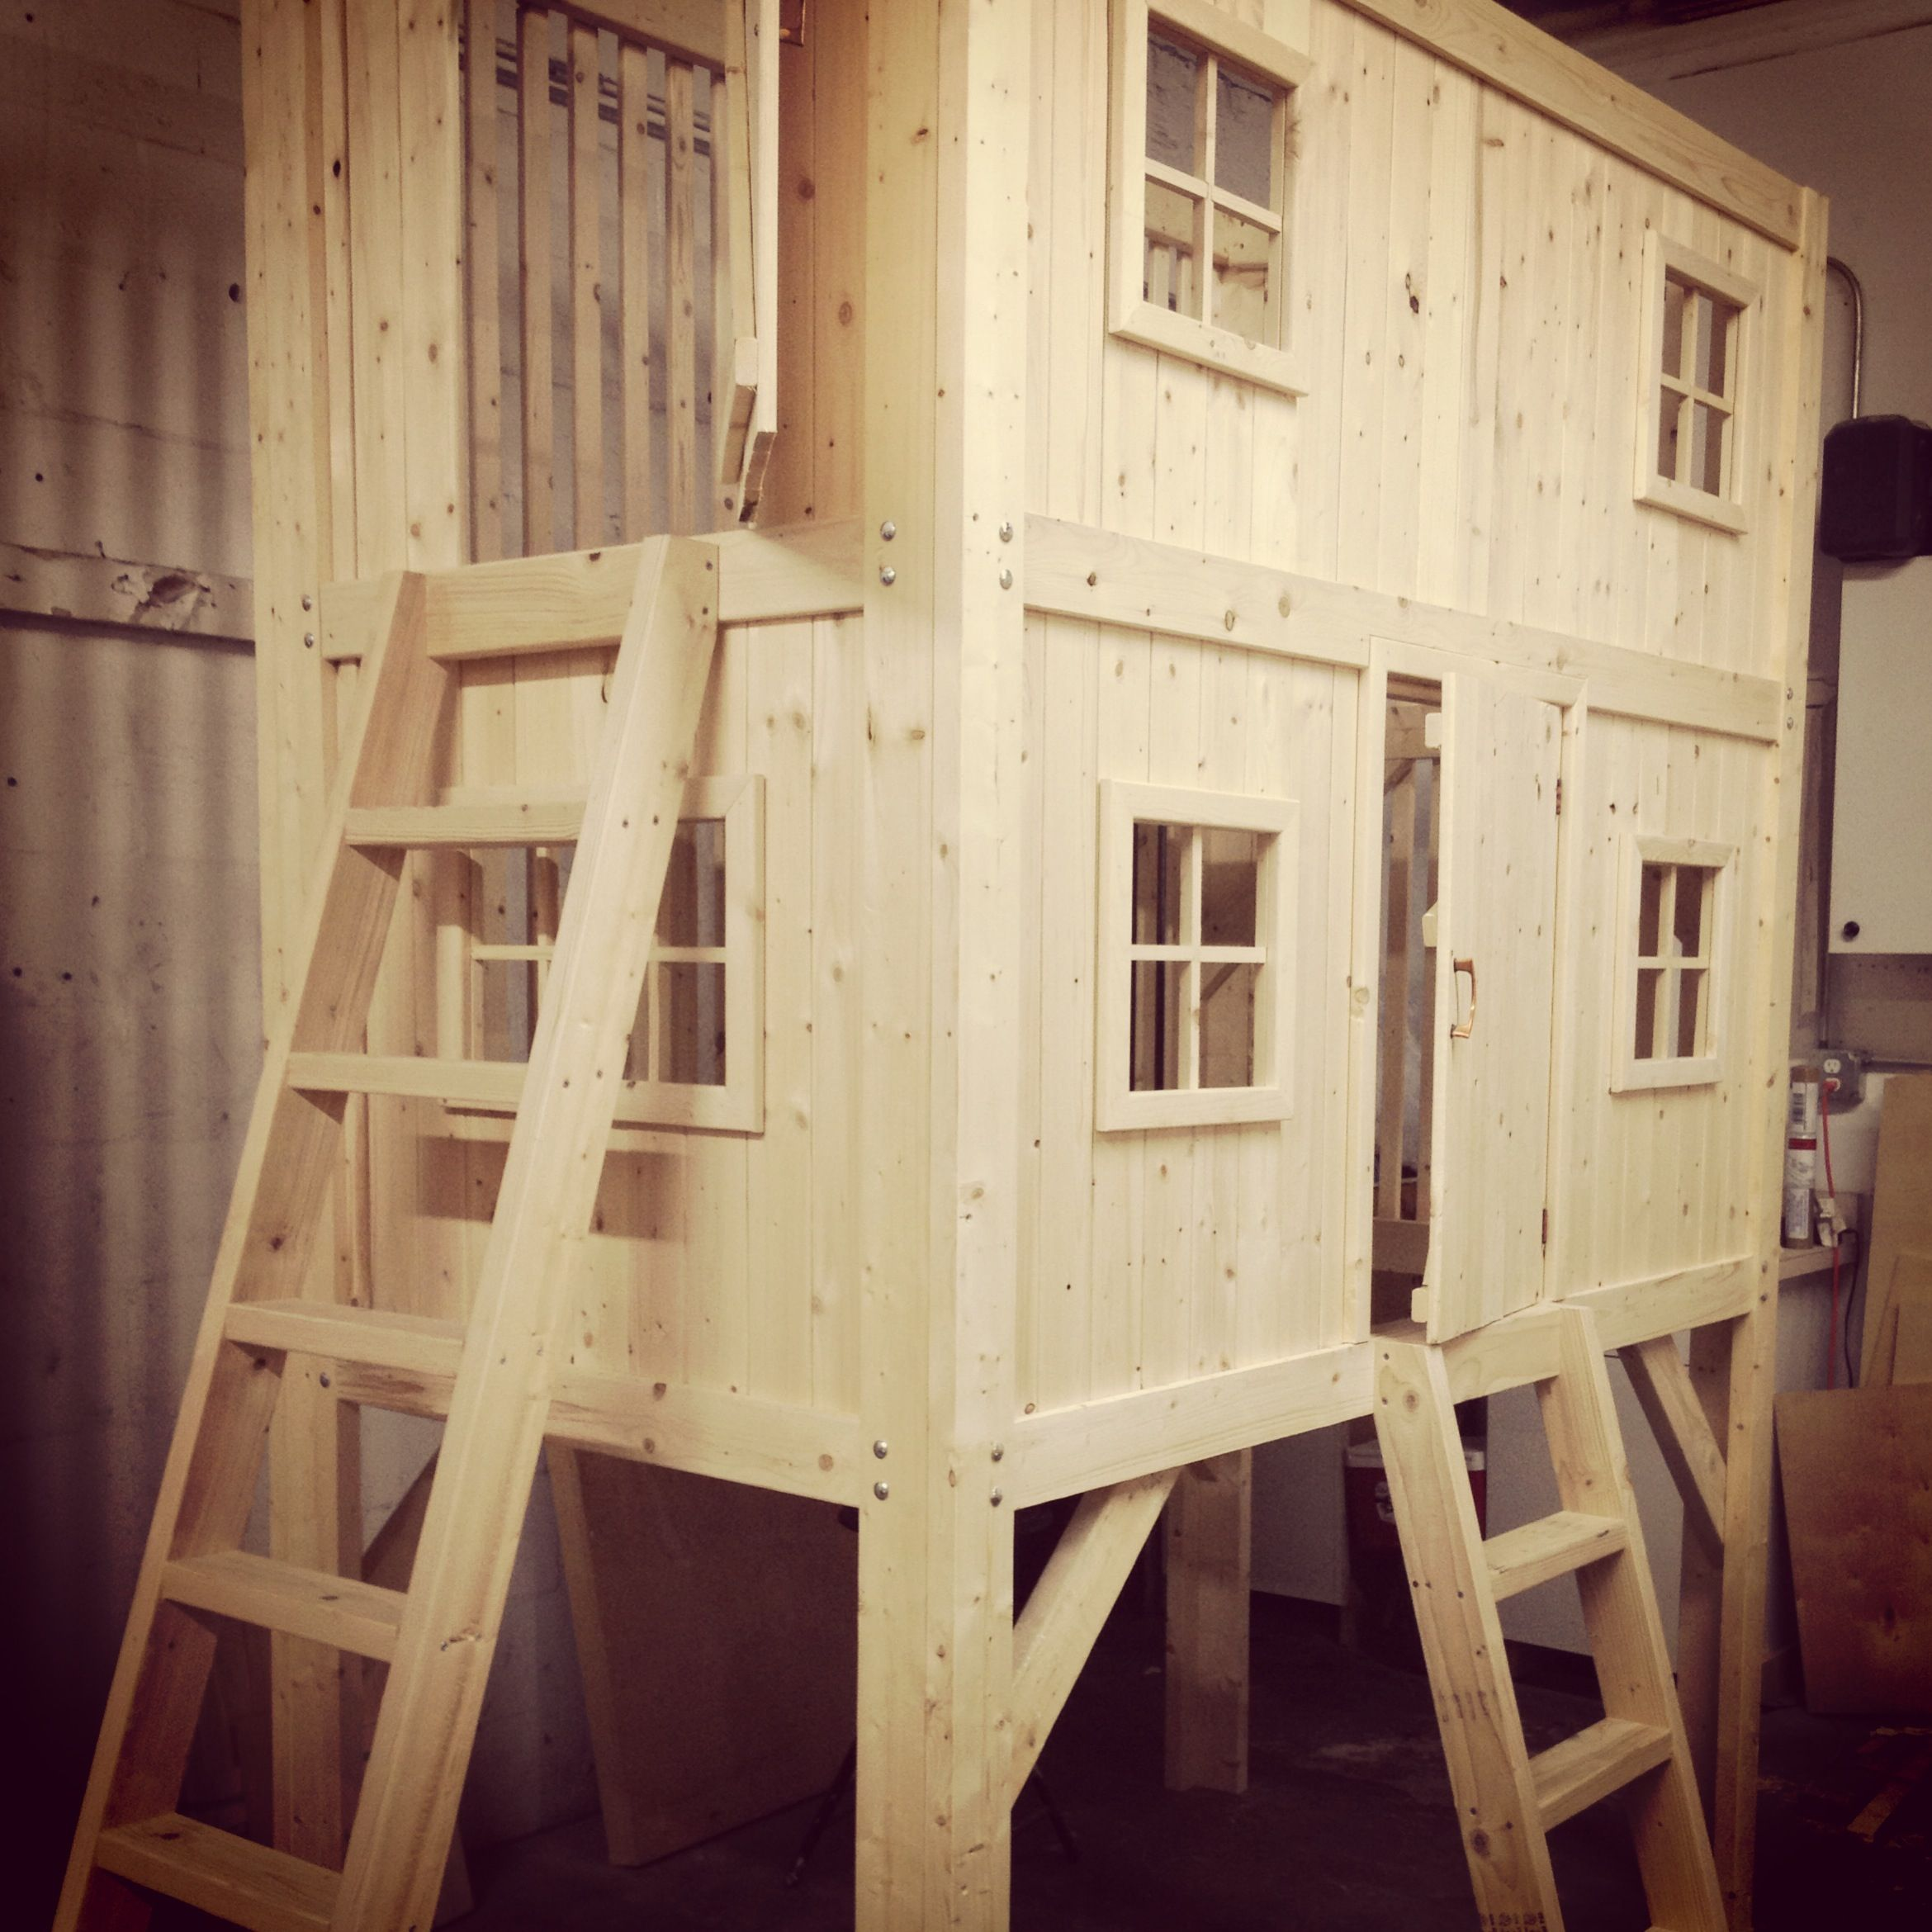 Diy Kids Beds Our Family Project Diy Loft Bed Bunk Bed Playhouse